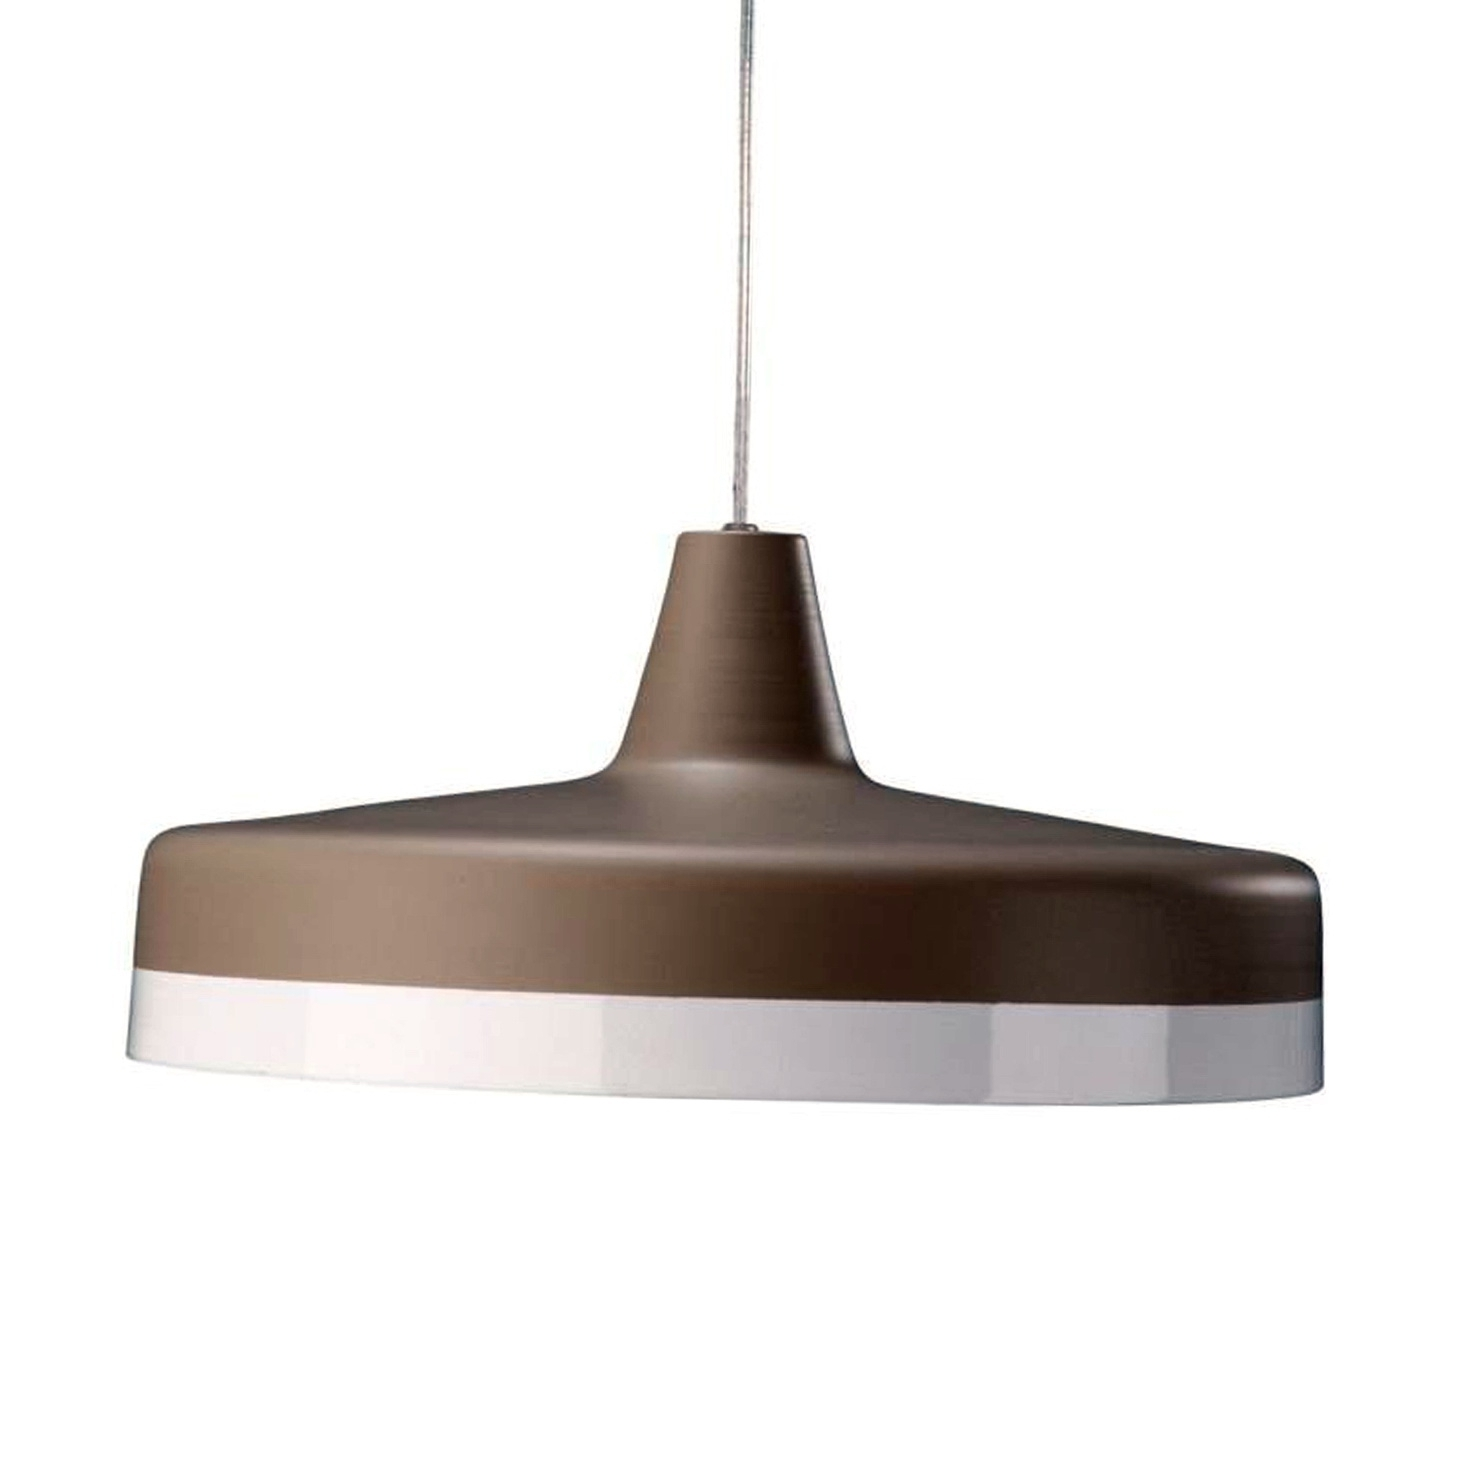 Most Up To Date Light Fixture : Modern Outdoor Ceiling Light Modern Bathroom Ceiling Within Contemporary Outdoor Ceiling Lights (View 13 of 20)